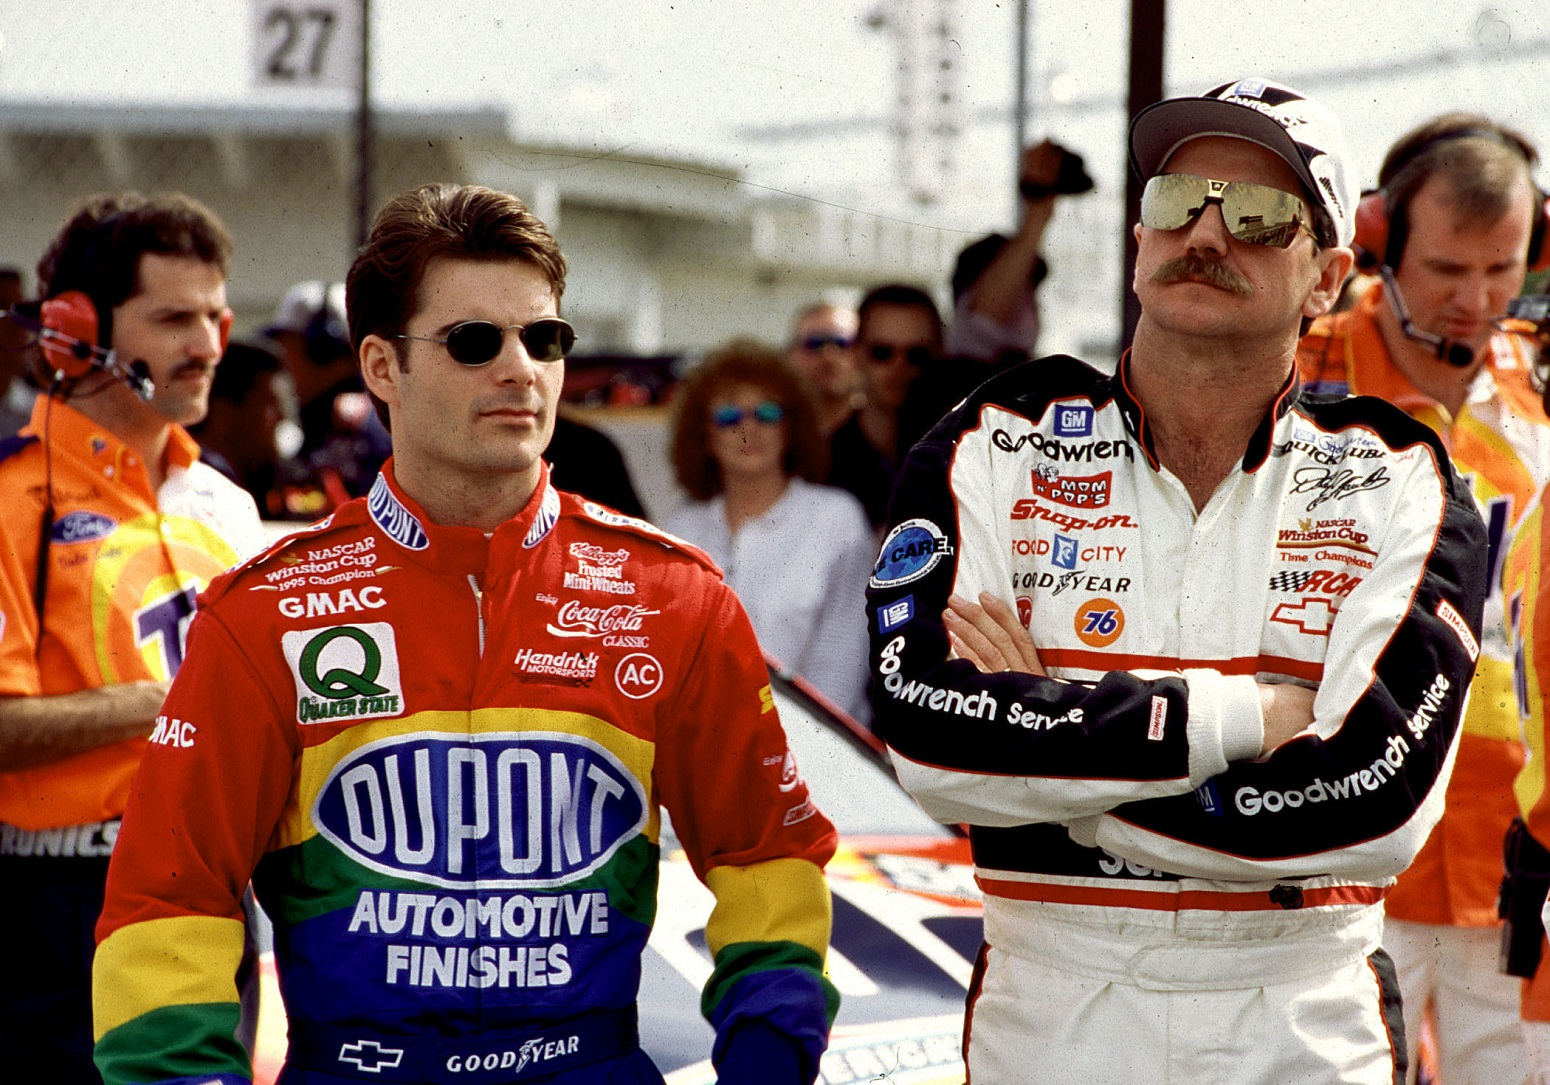 Dale Earnhardt Sr. questioned Jeff Gordon's sexuality